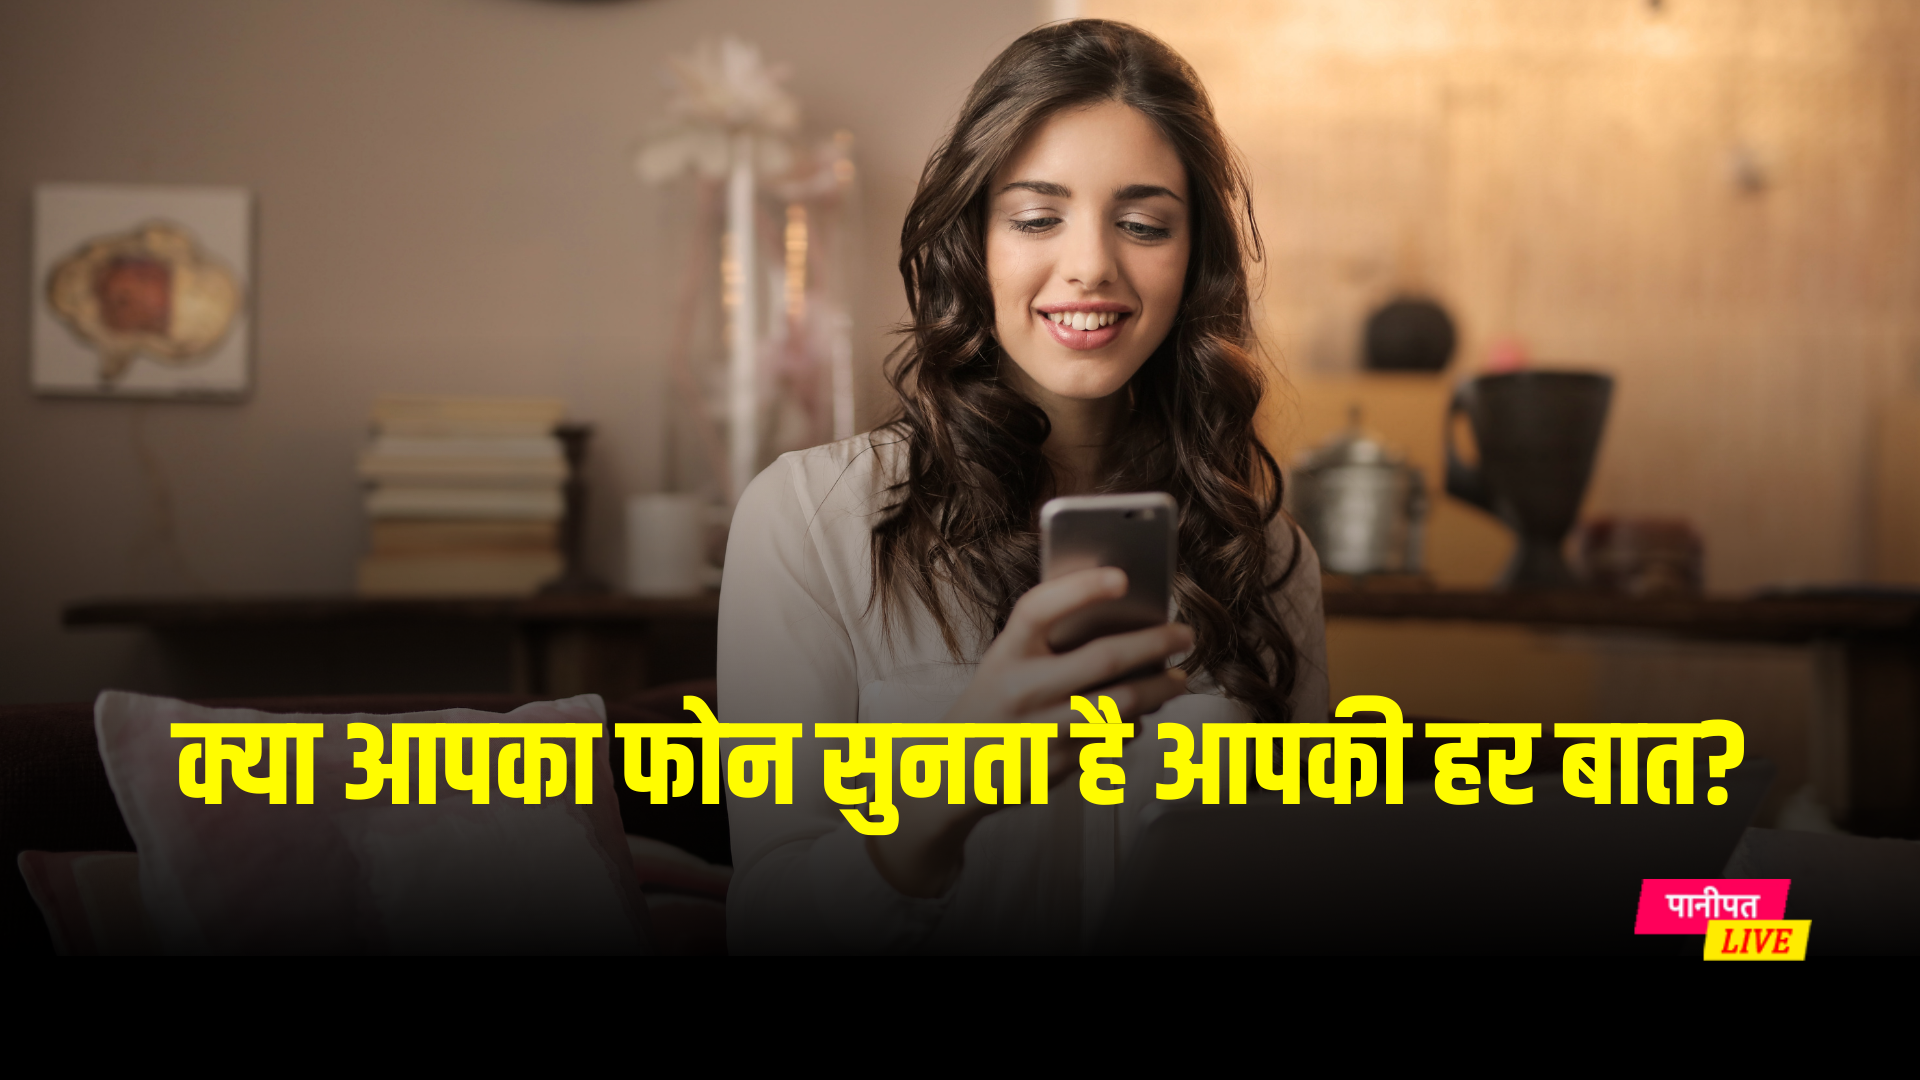 Is your phone listening to all your private talk Is anyone watching you Read this news to know